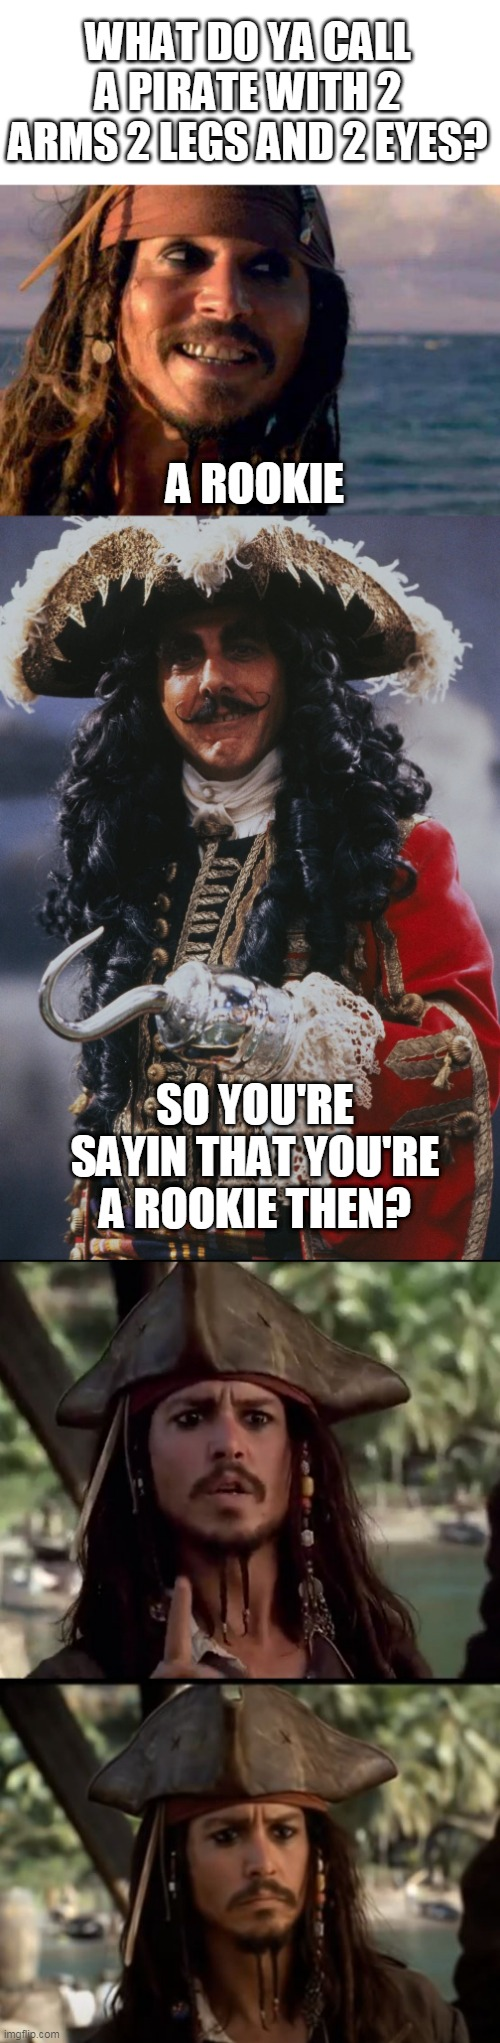 SORRY JACK |  WHAT DO YA CALL A PIRATE WITH 2 ARMS 2 LEGS AND 2 EYES? A ROOKIE; SO YOU'RE SAYIN THAT YOU'RE A ROOKIE THEN? | image tagged in memes,pirate,pirates of the caribbean,captain hook,hook,jack sparrow | made w/ Imgflip meme maker